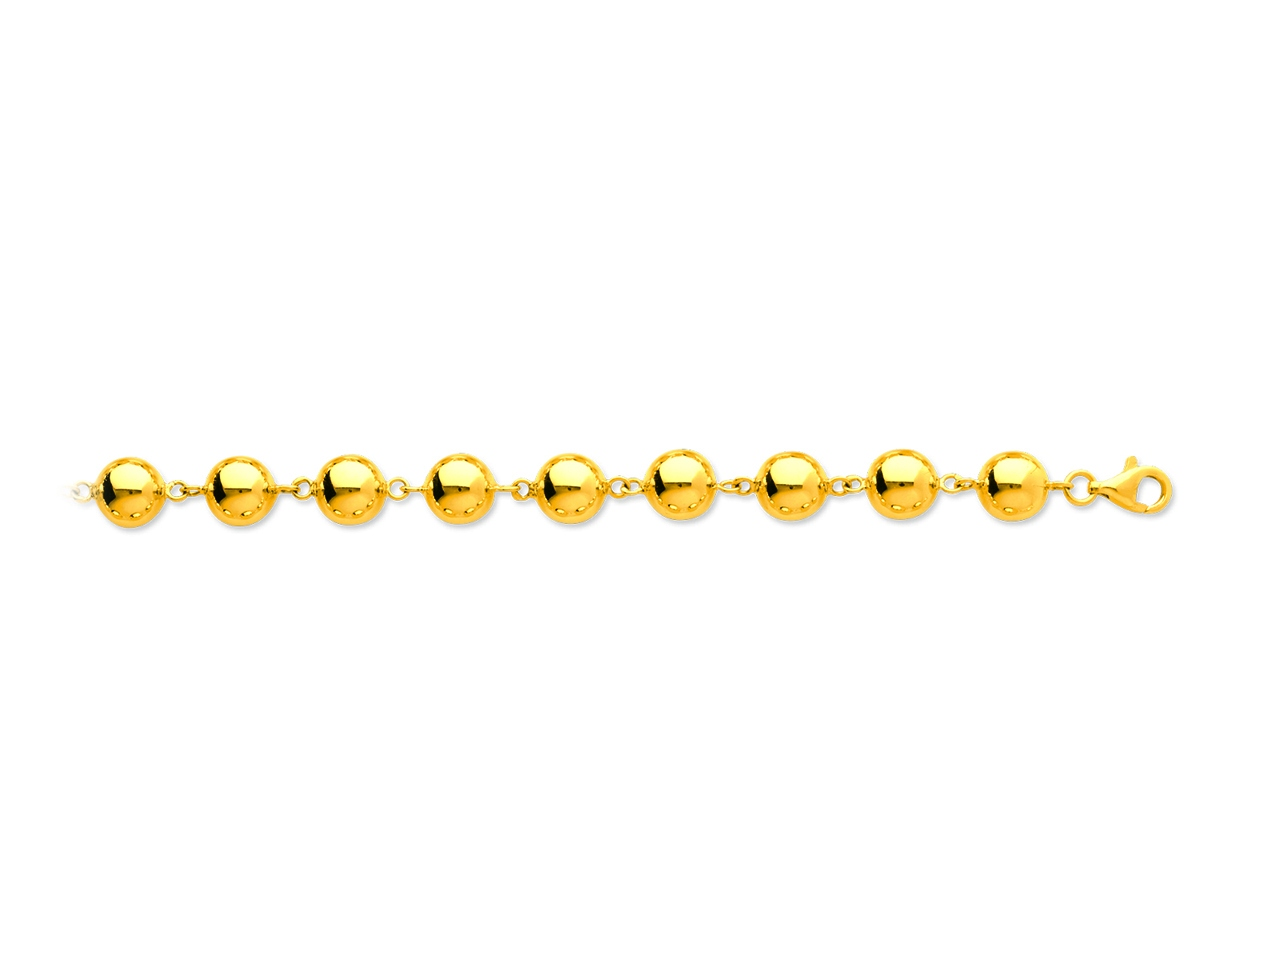 Collier Boules marseillais 9 mm, 45 cm, Or jaune 18k